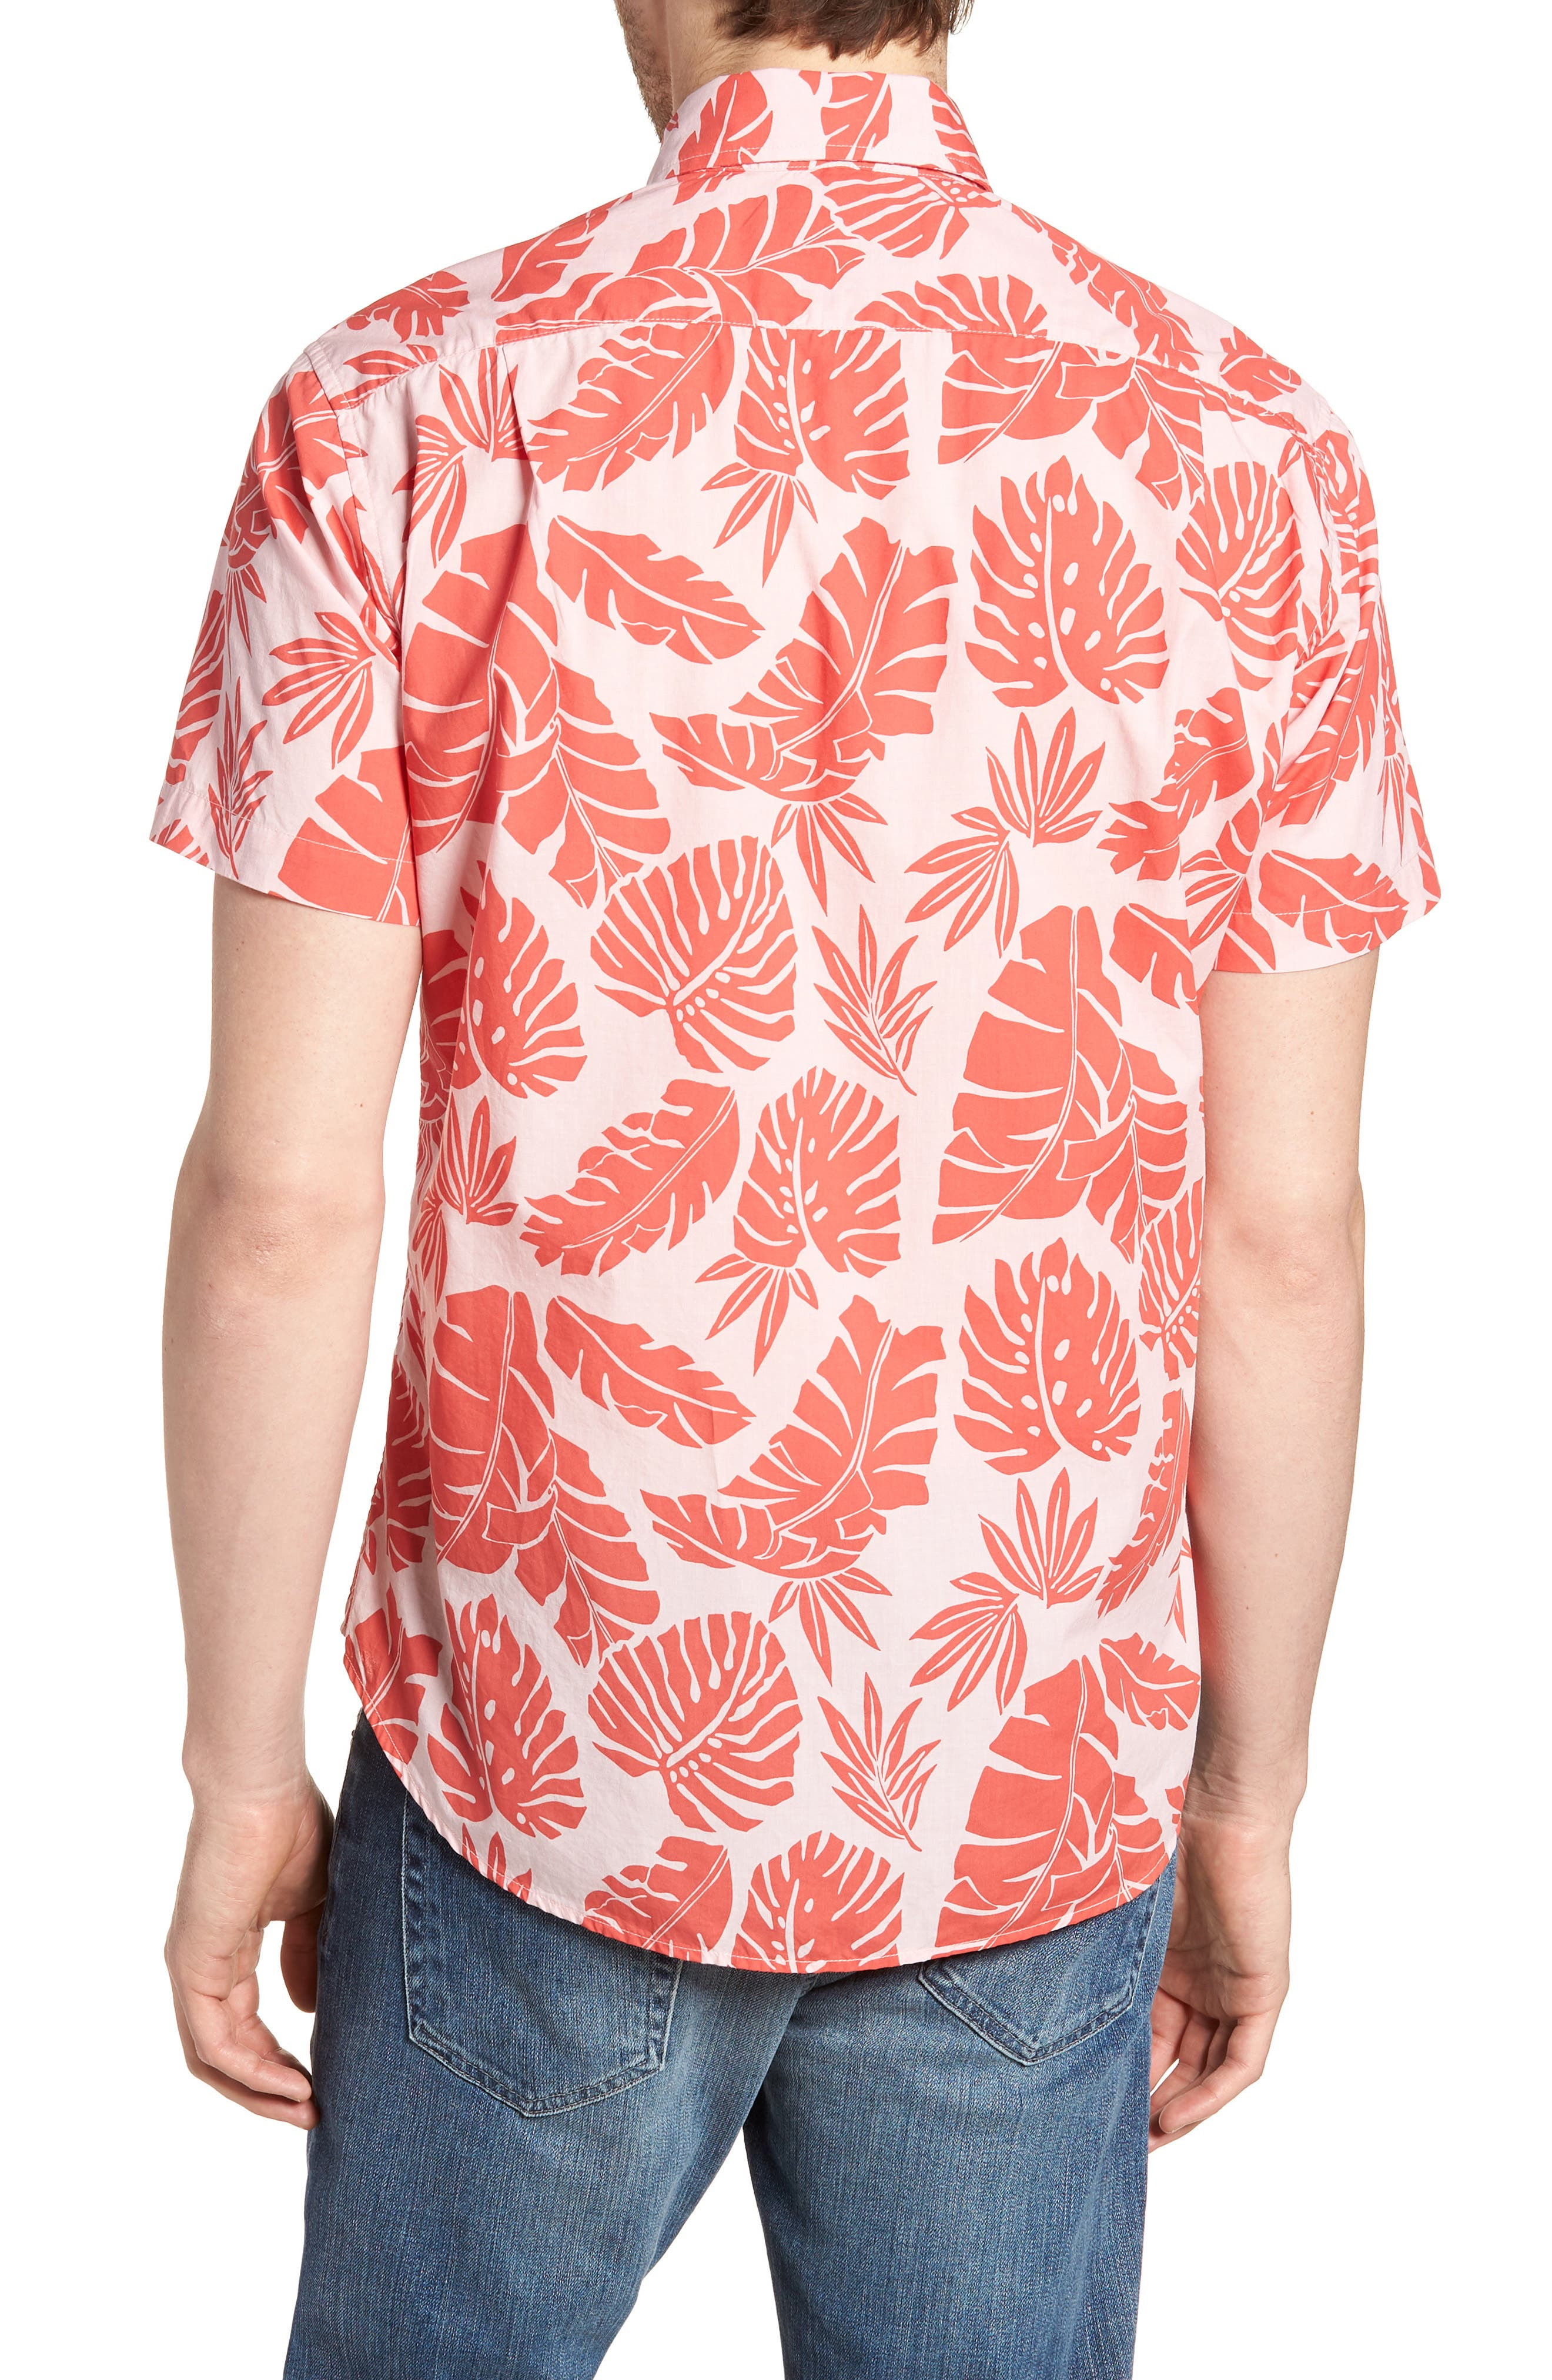 Riviera Slim Fit Palm Print Sport Shirt,                             Alternate thumbnail 5, color,                             Palm Scatter - Coral Fan